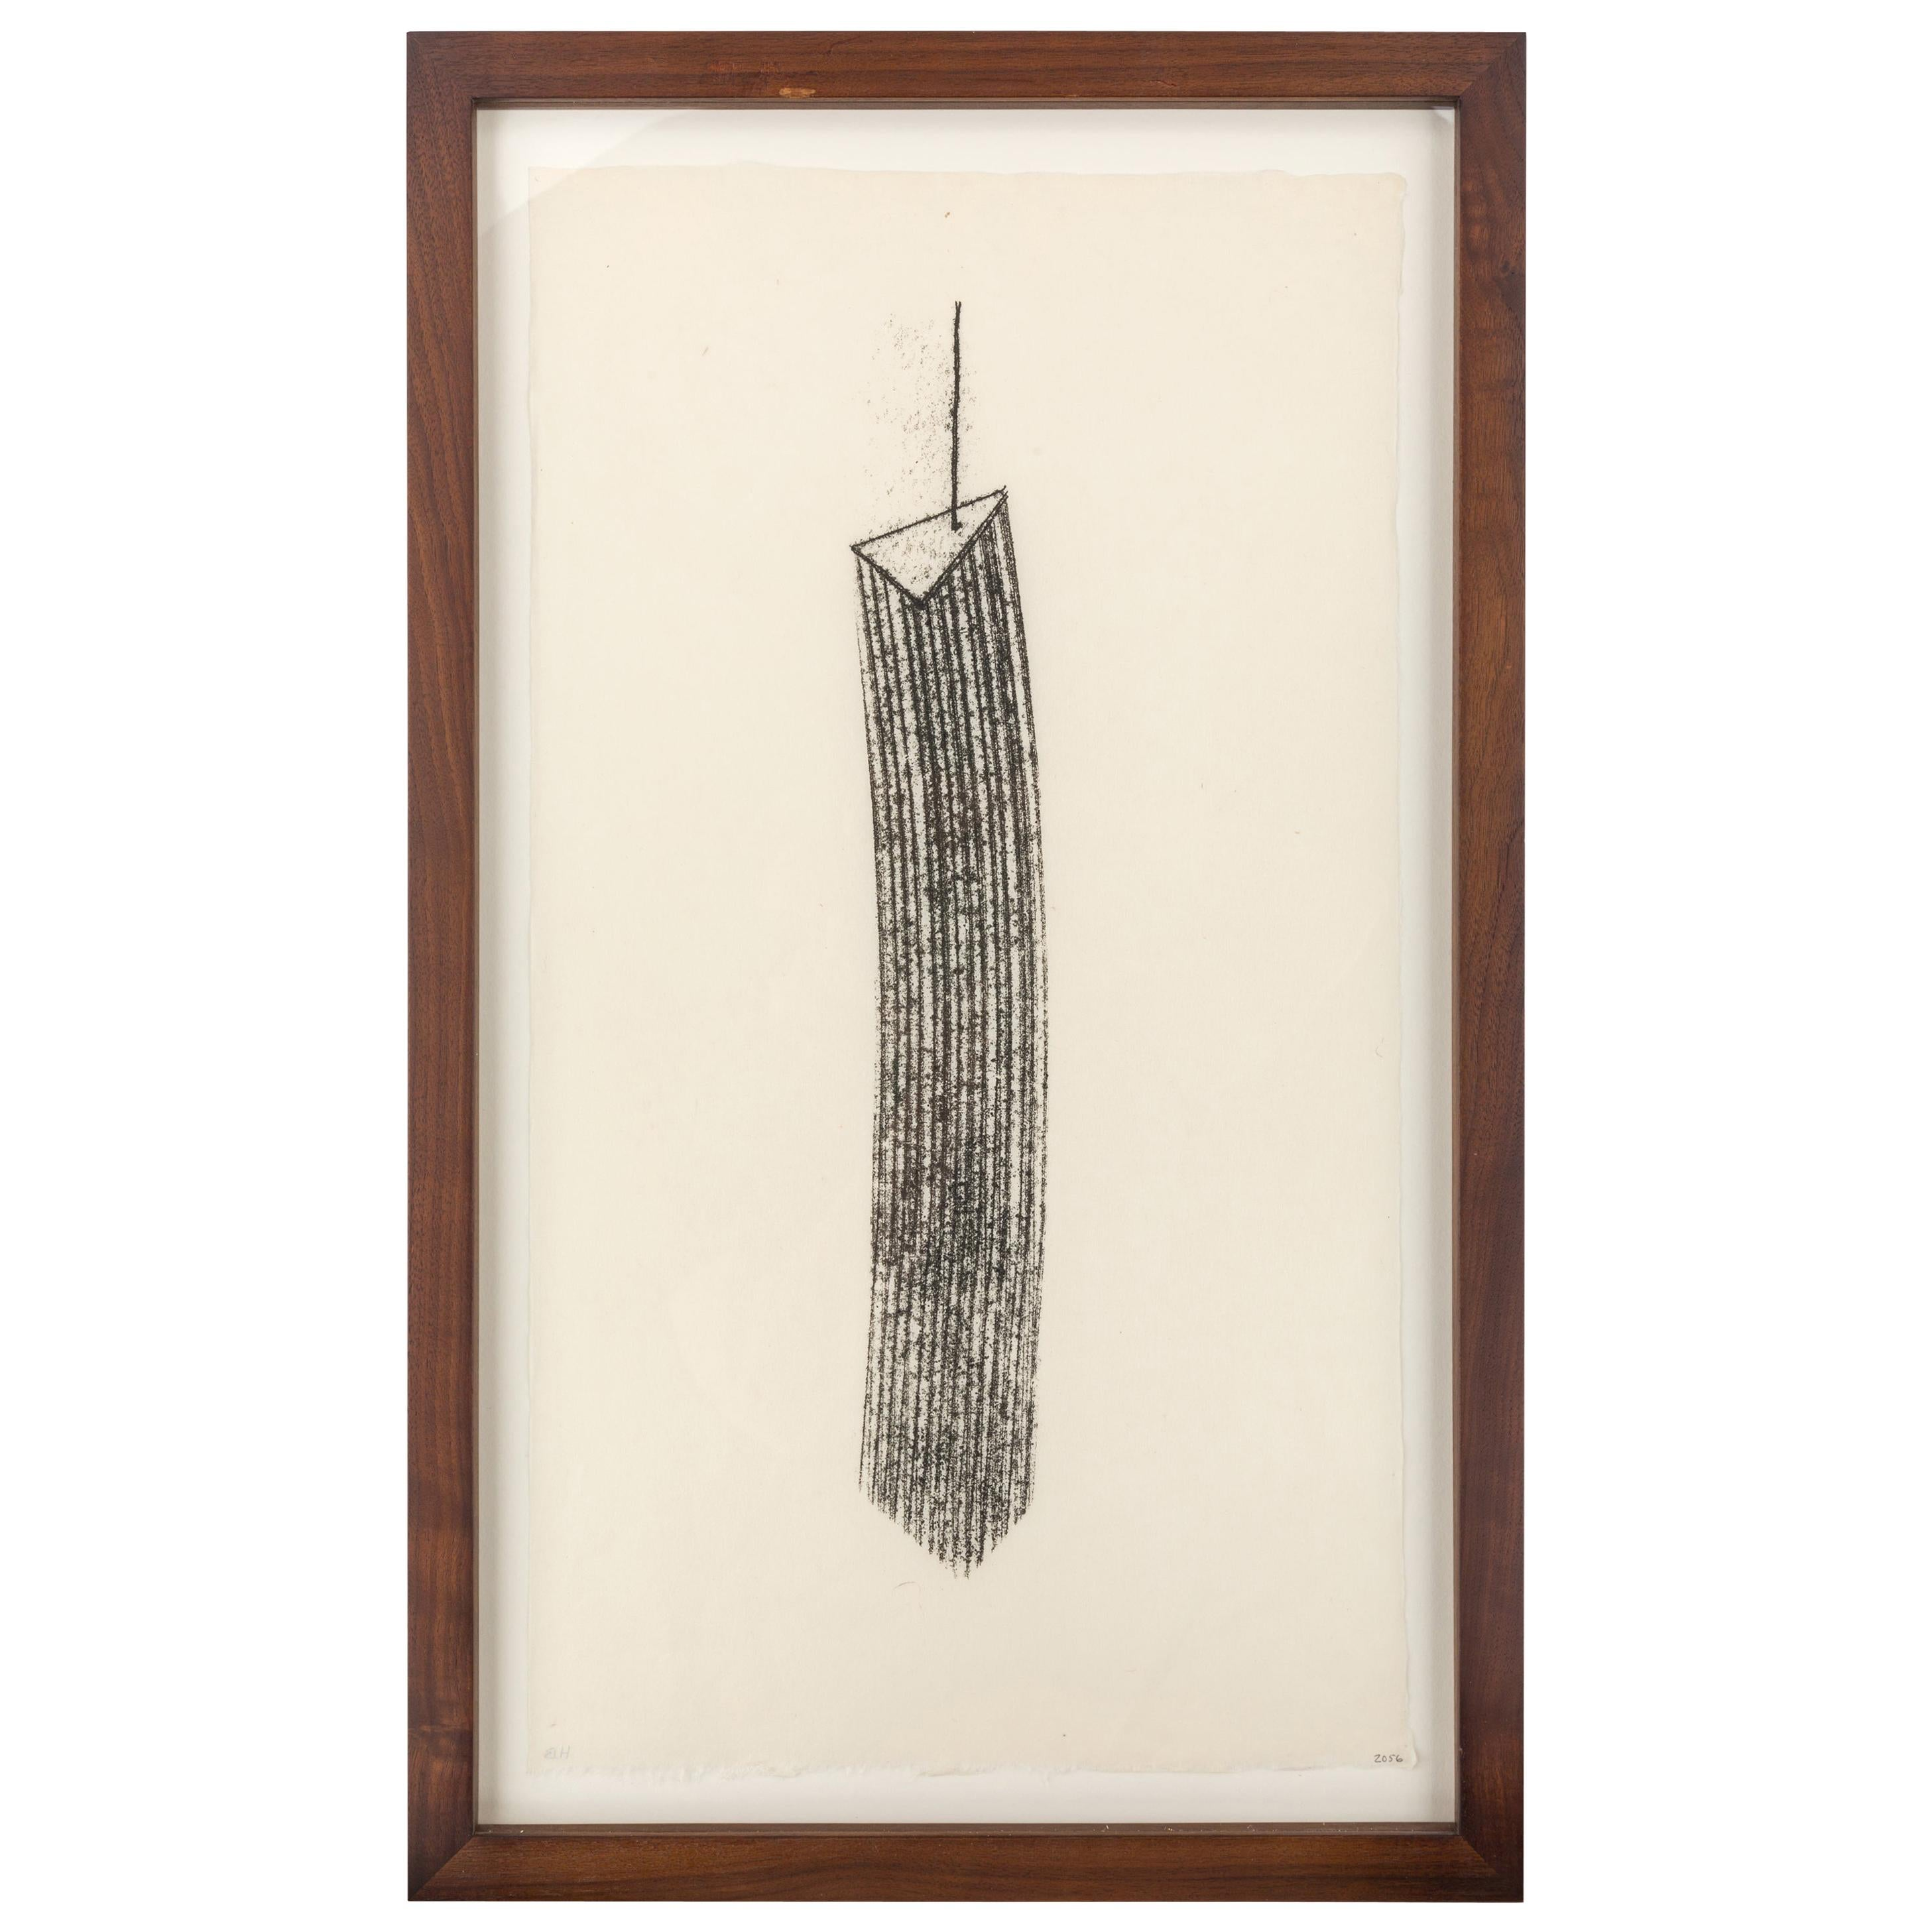 Harry Bertoia Framed Monotype on Rice Paper, USA 1960s